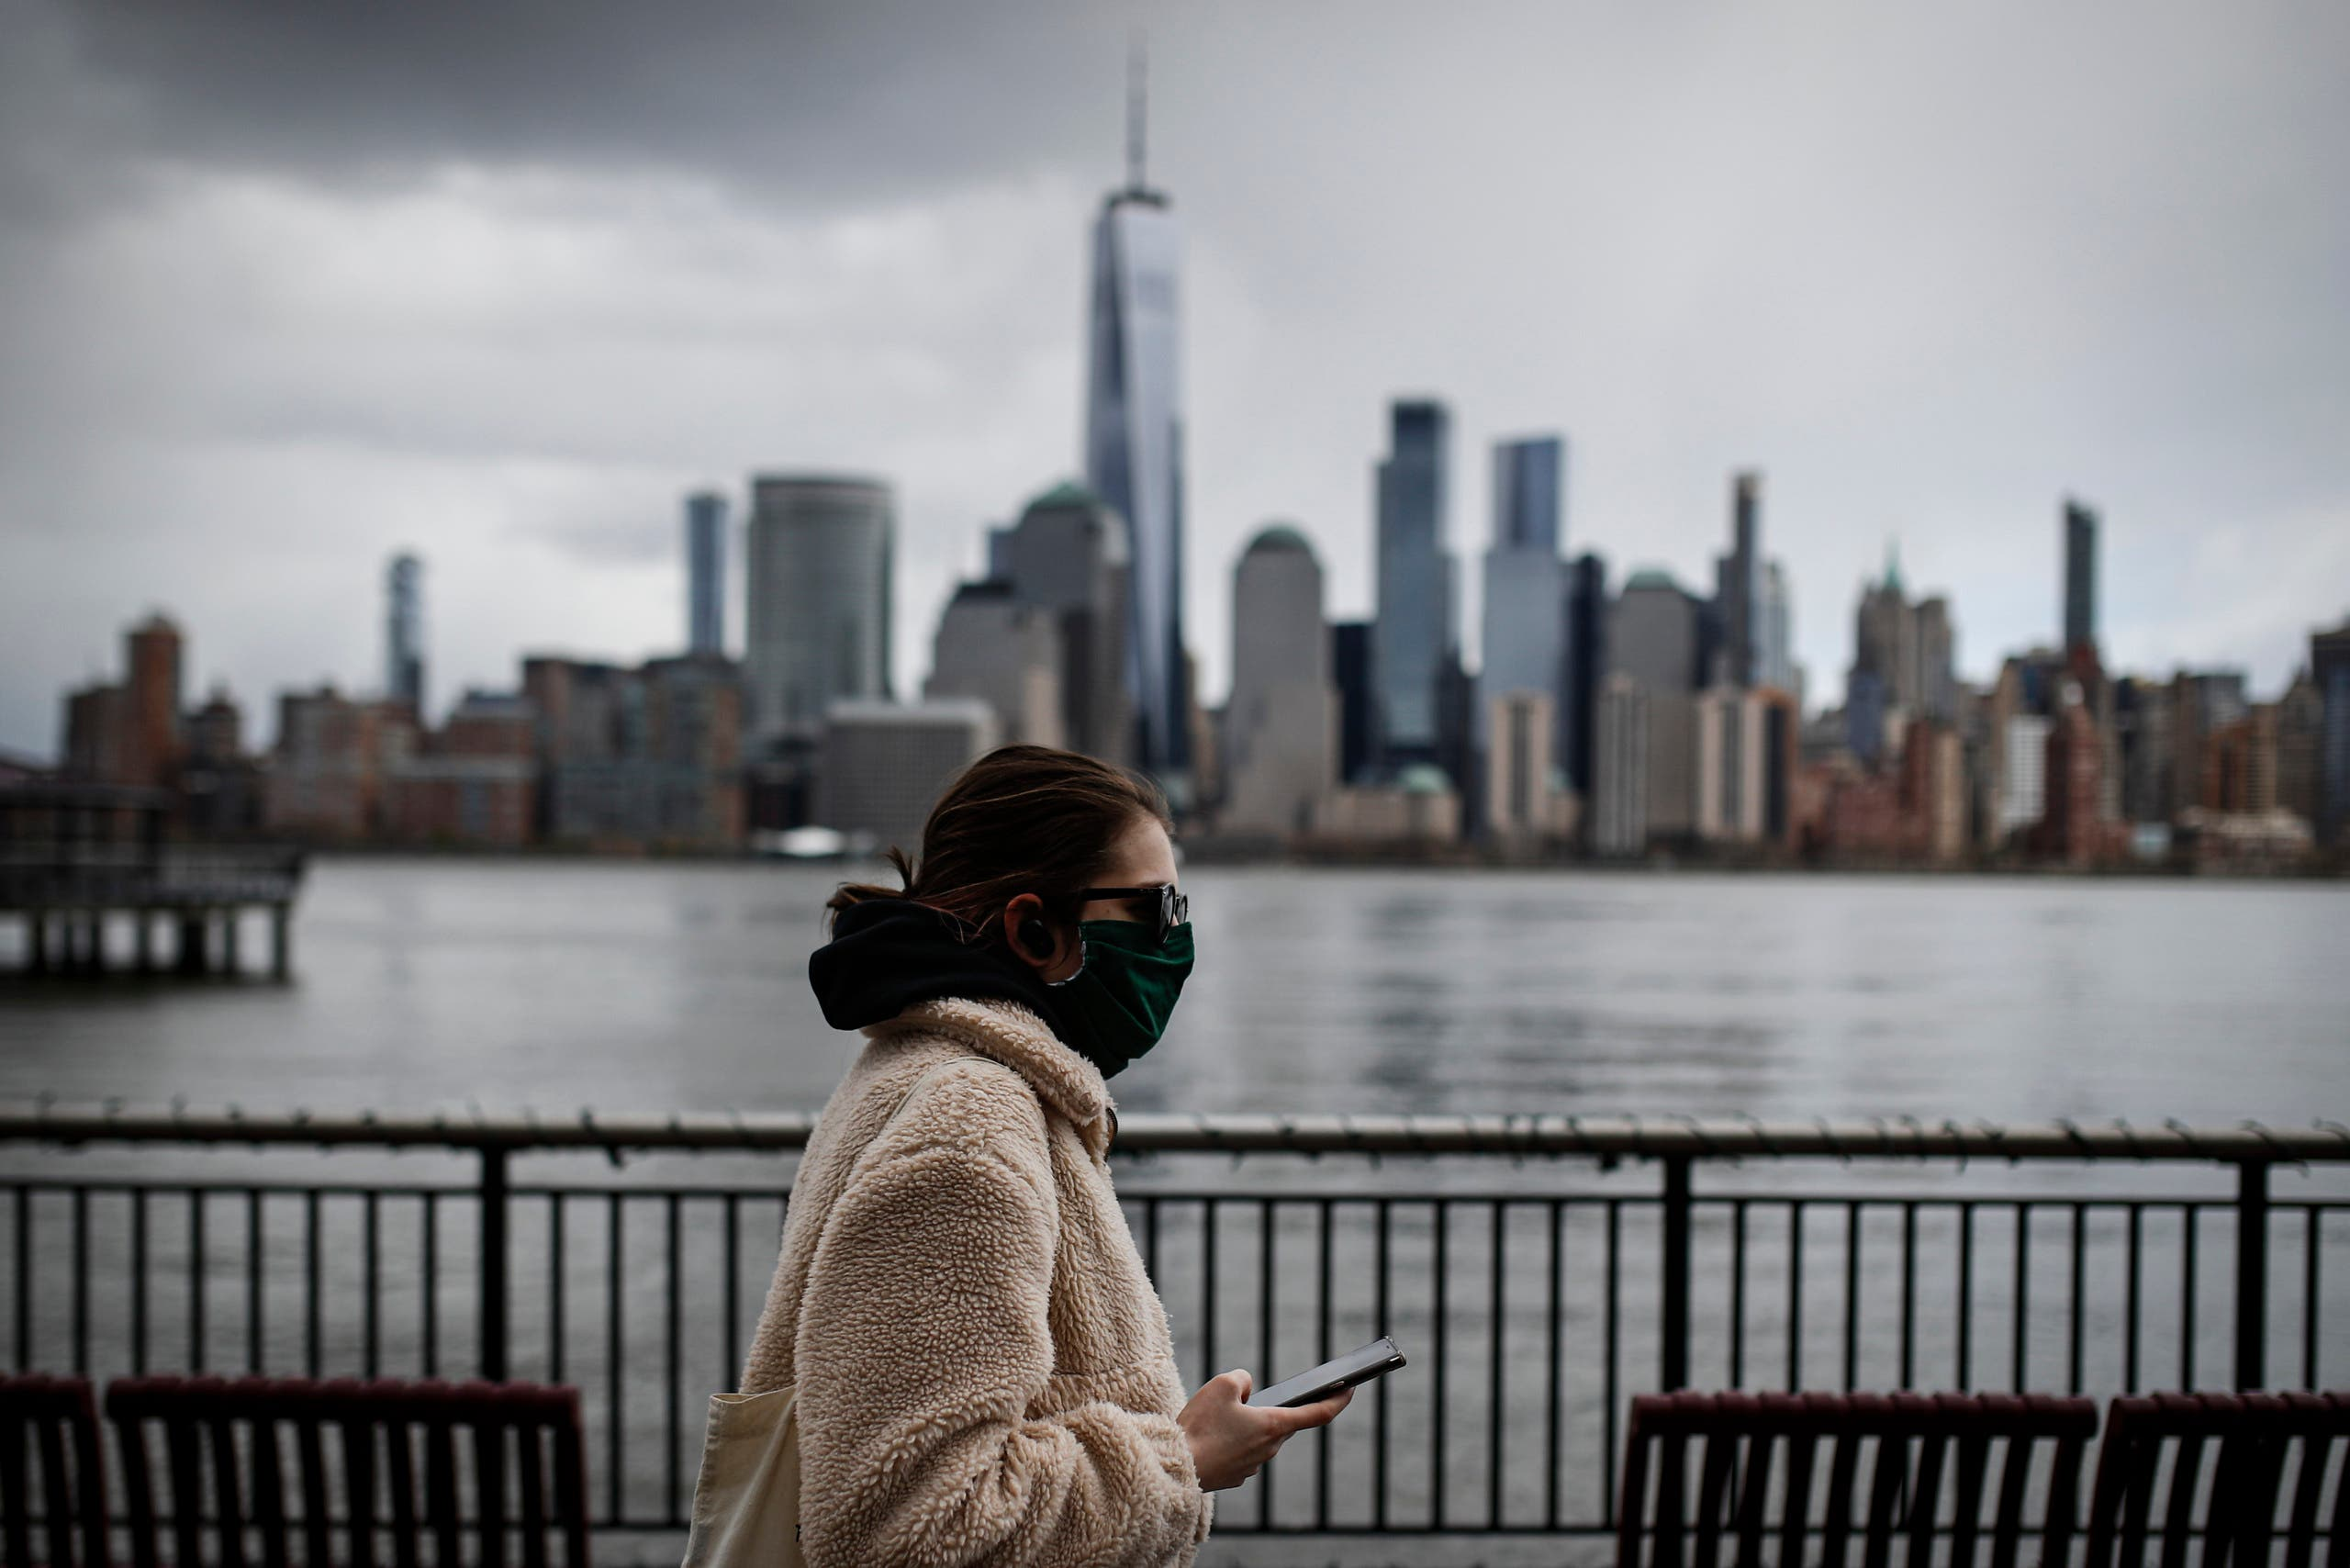 The downtown New York City skyline looms over pedestrians wearing masks due to COVID-19 concerns, Friday, April 10, 2020, in Jersey City, N.J. (AP)